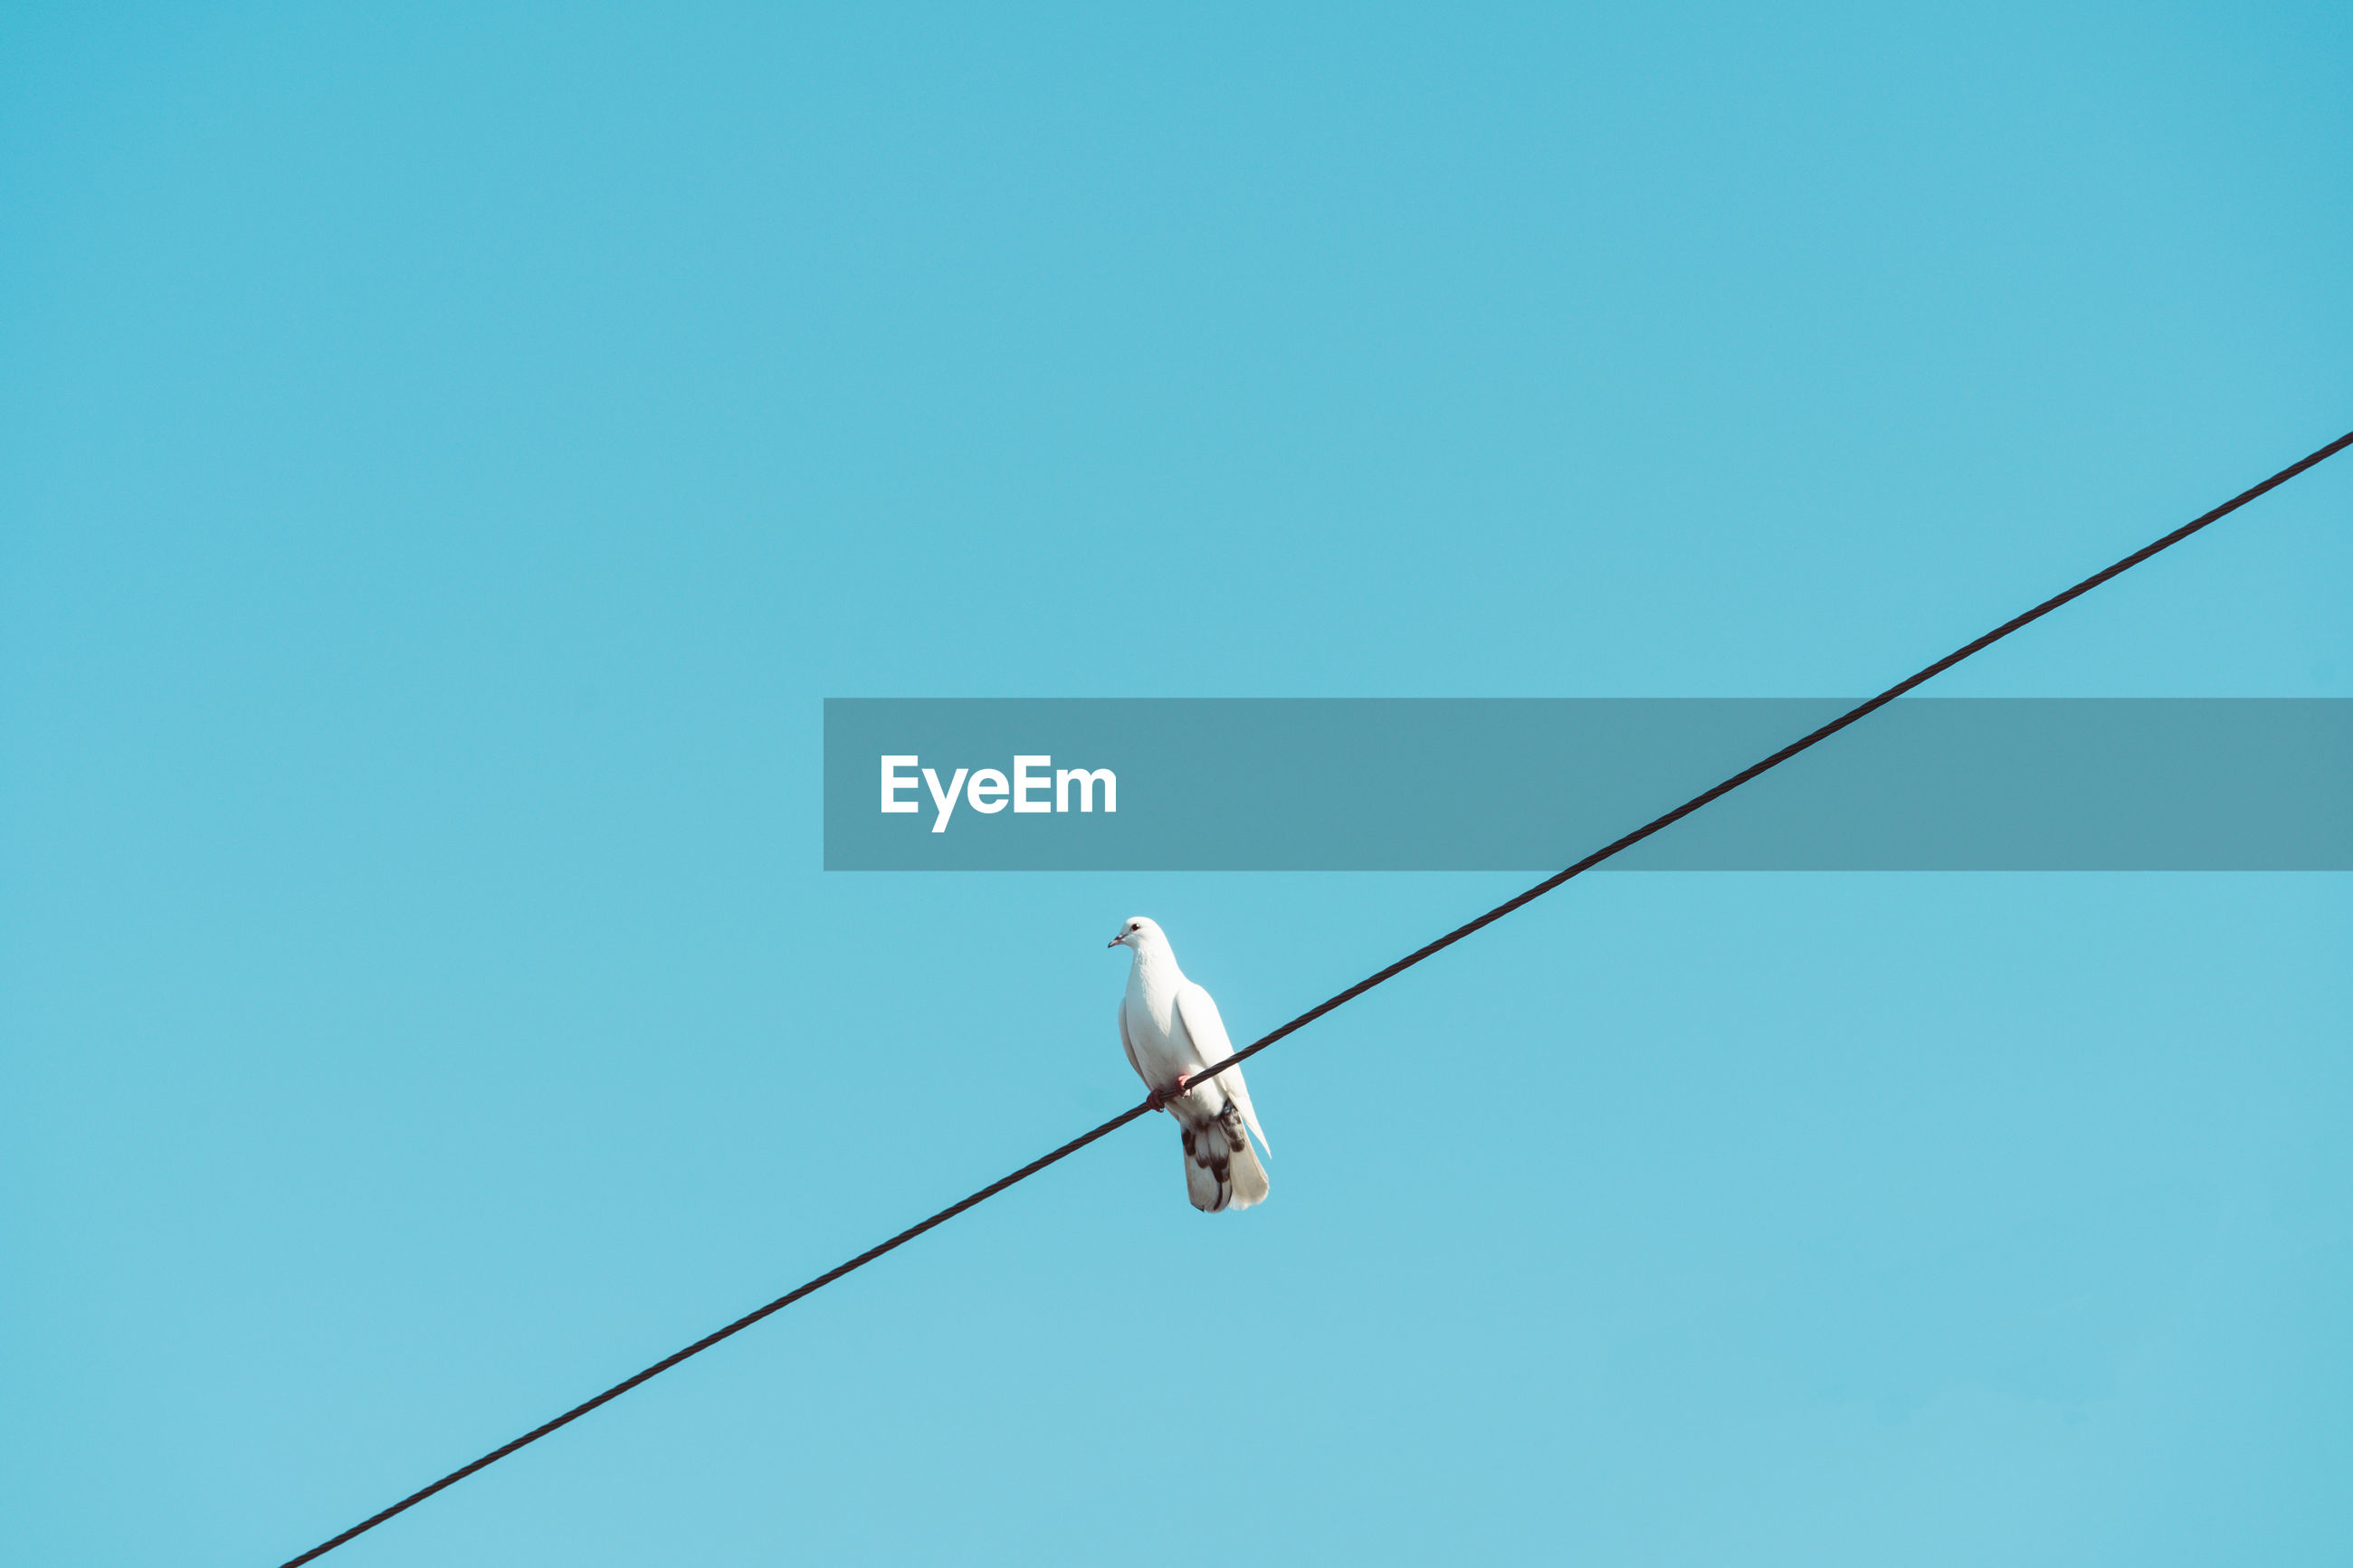 Low angle view of bird perching on cable against clear blue sky